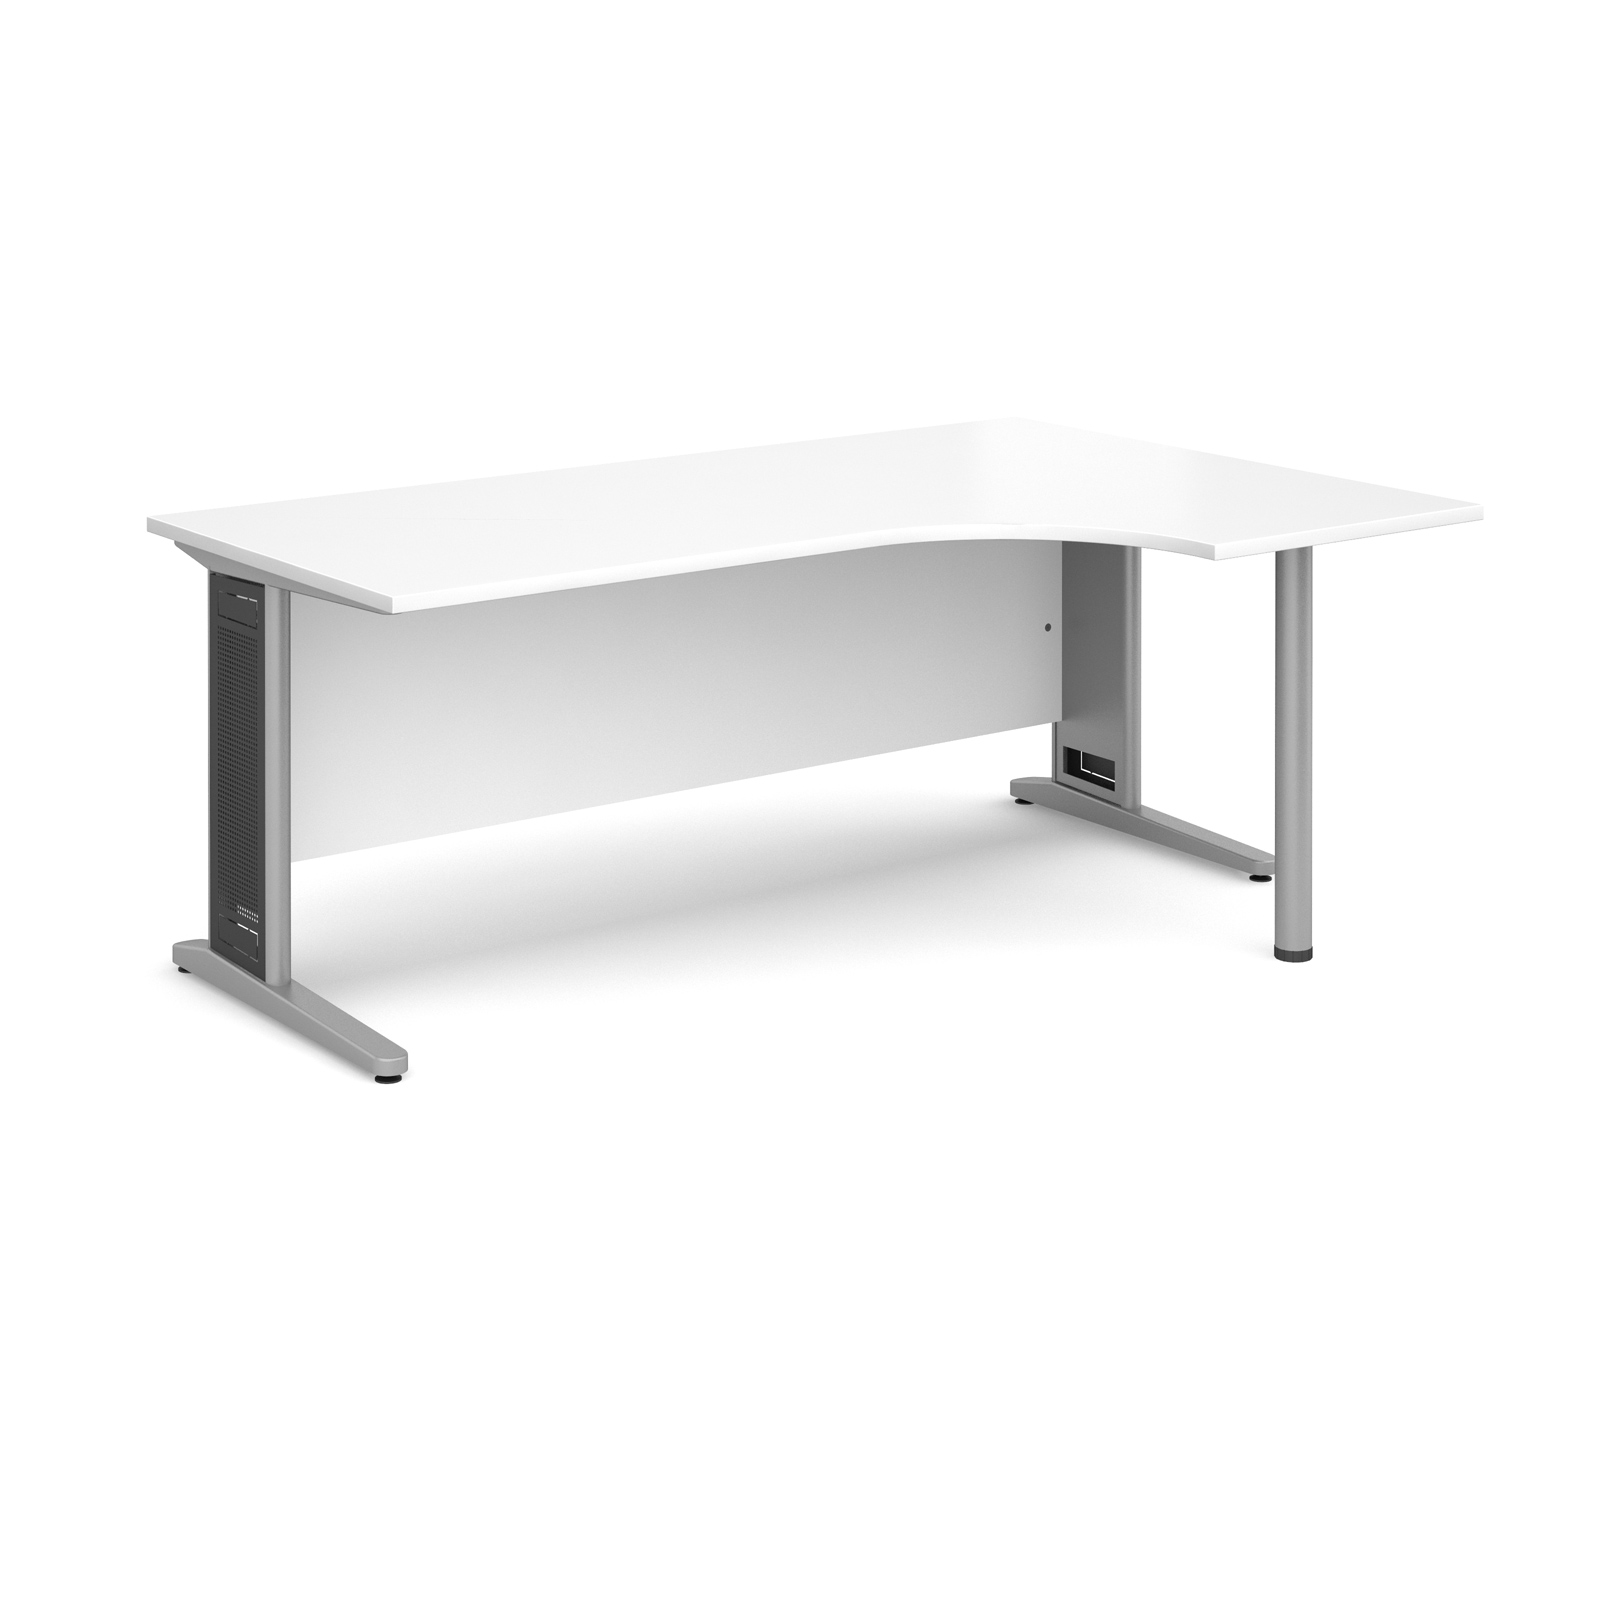 Largo right hand ergonomic desk 1800mm - silver cantilever frame with removable grill, white top